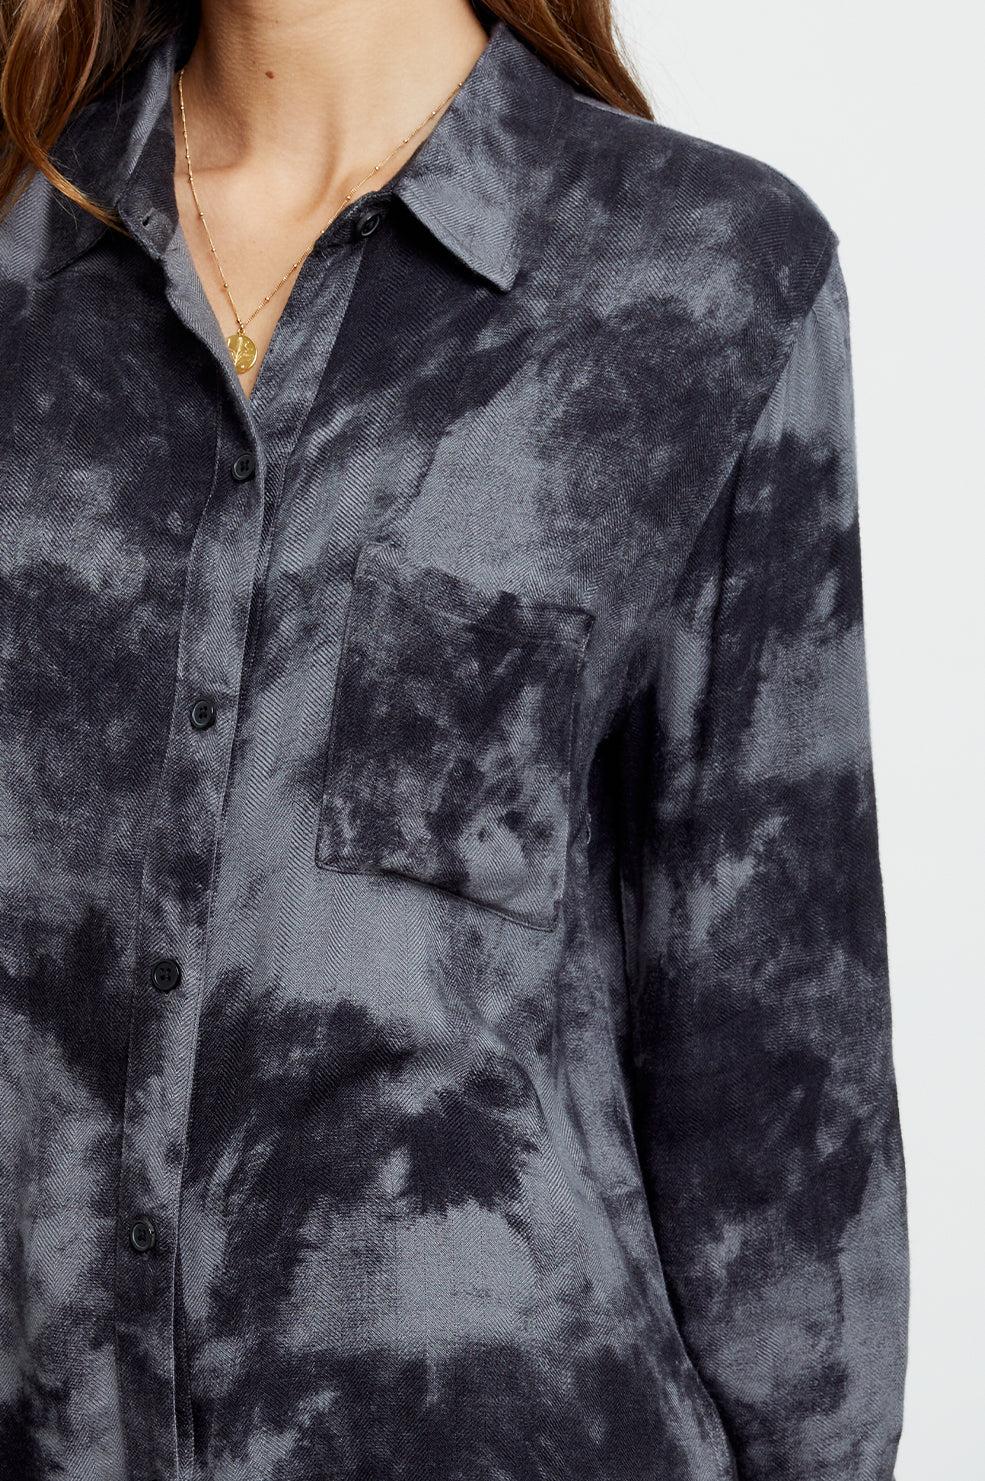 hunter charcoal tie dye buttondown shirt close-up